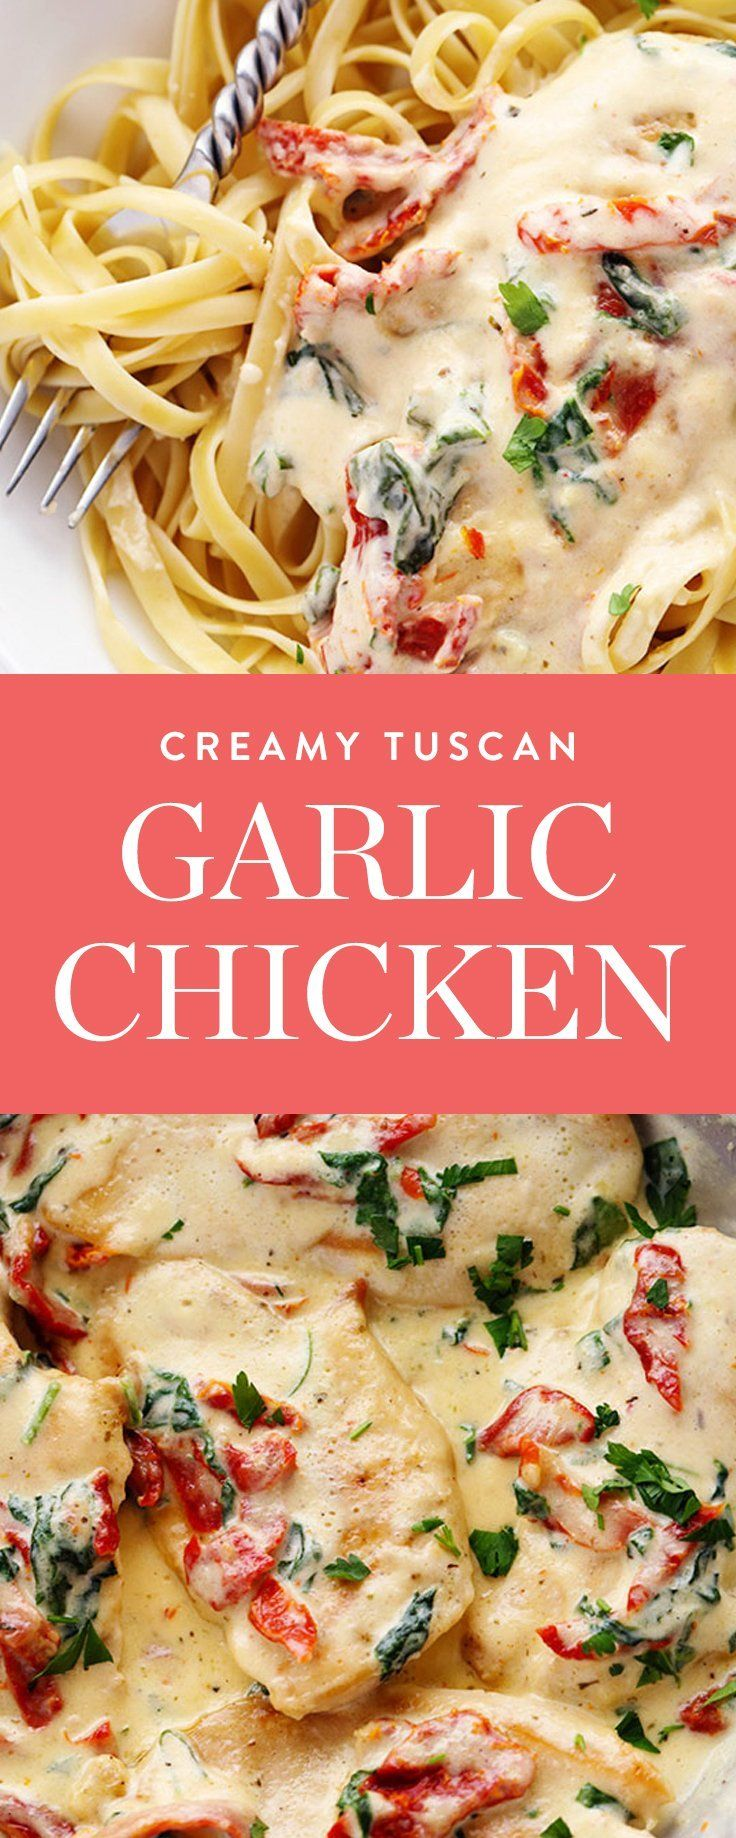 29 Amazing Recipes You Can Make with Gluten-FreeGrains 29 Amazing Recipes You Can Make with Gluten-FreeGrains new picture